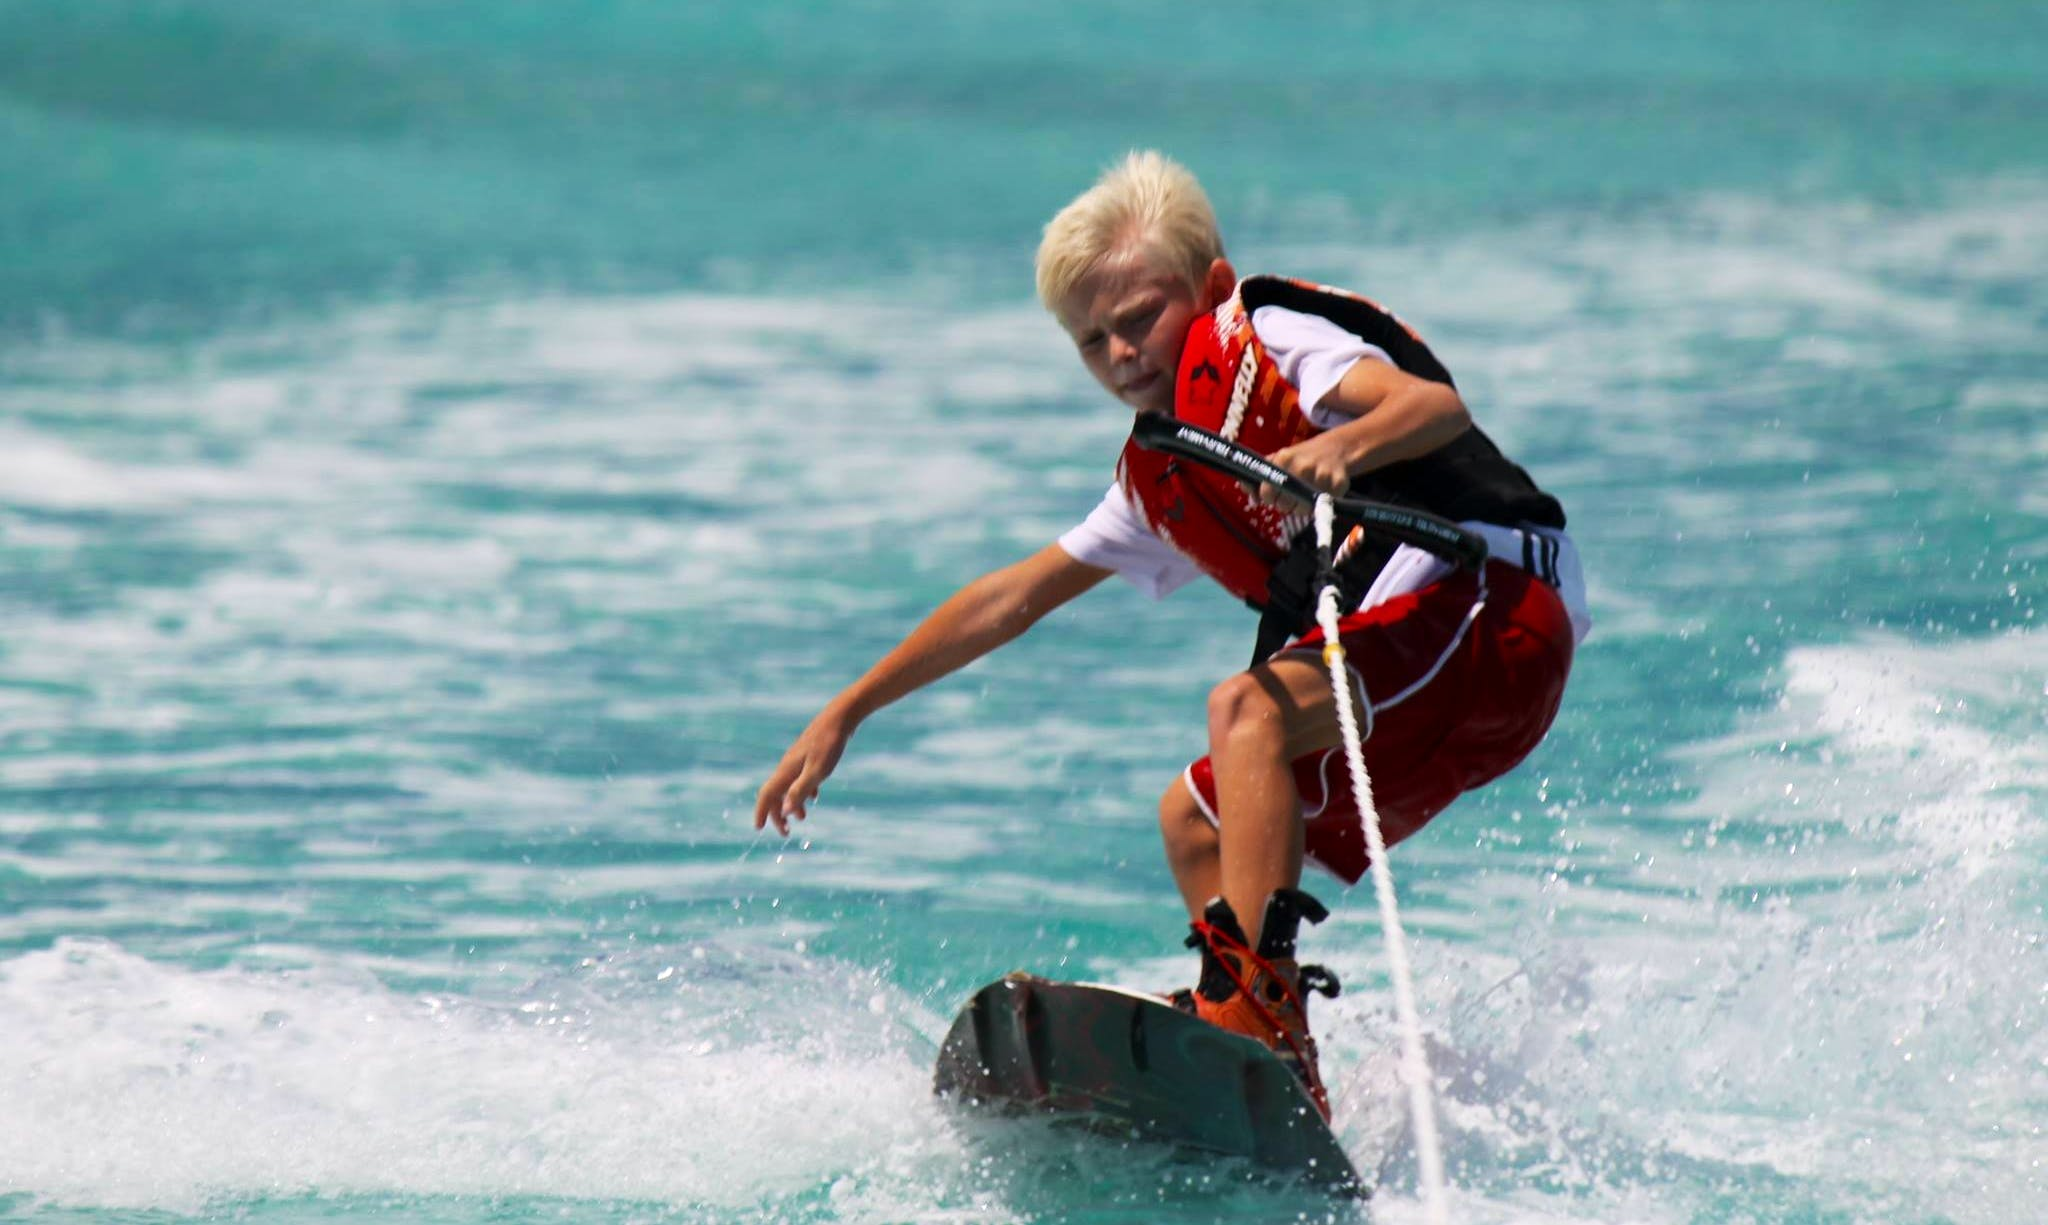 Wakeboarding, Waterskiing, & Tubing, in Turks and Caicos Islands